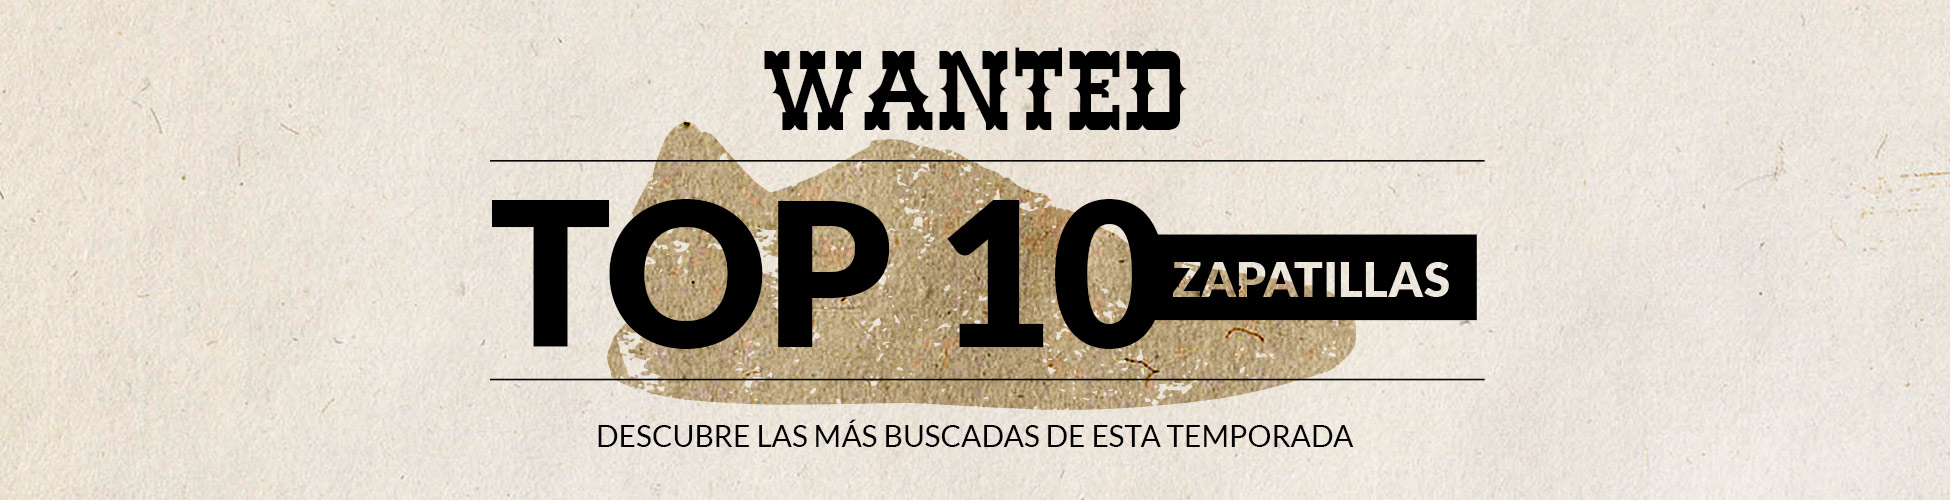 Top 10 Zapatillas ES